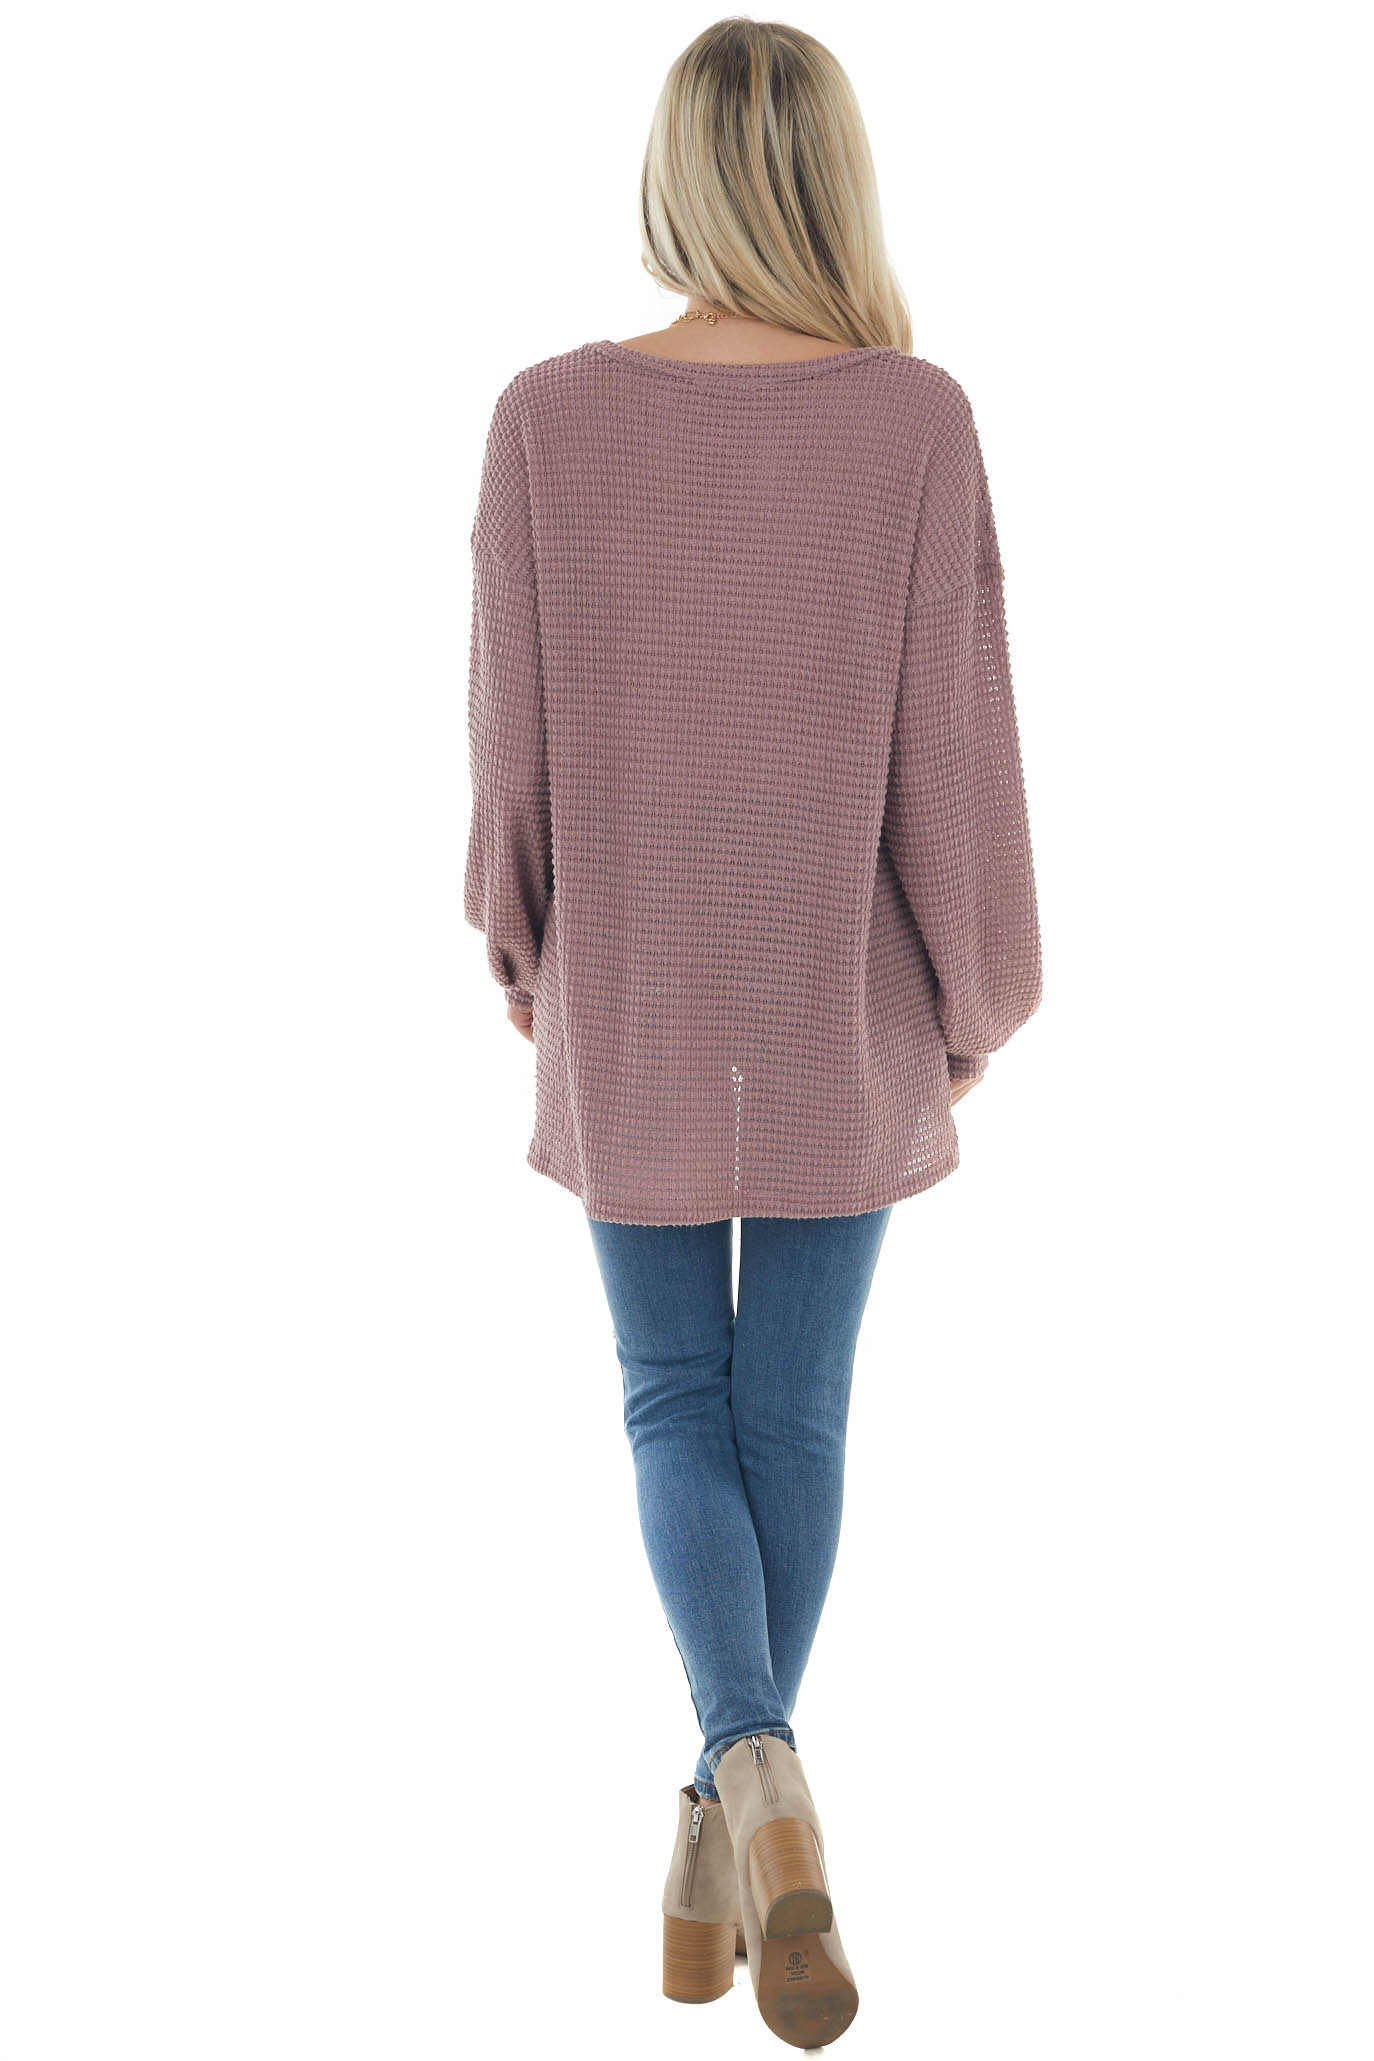 Mauve Waffle Knit Top with Long Bubble Sleeves